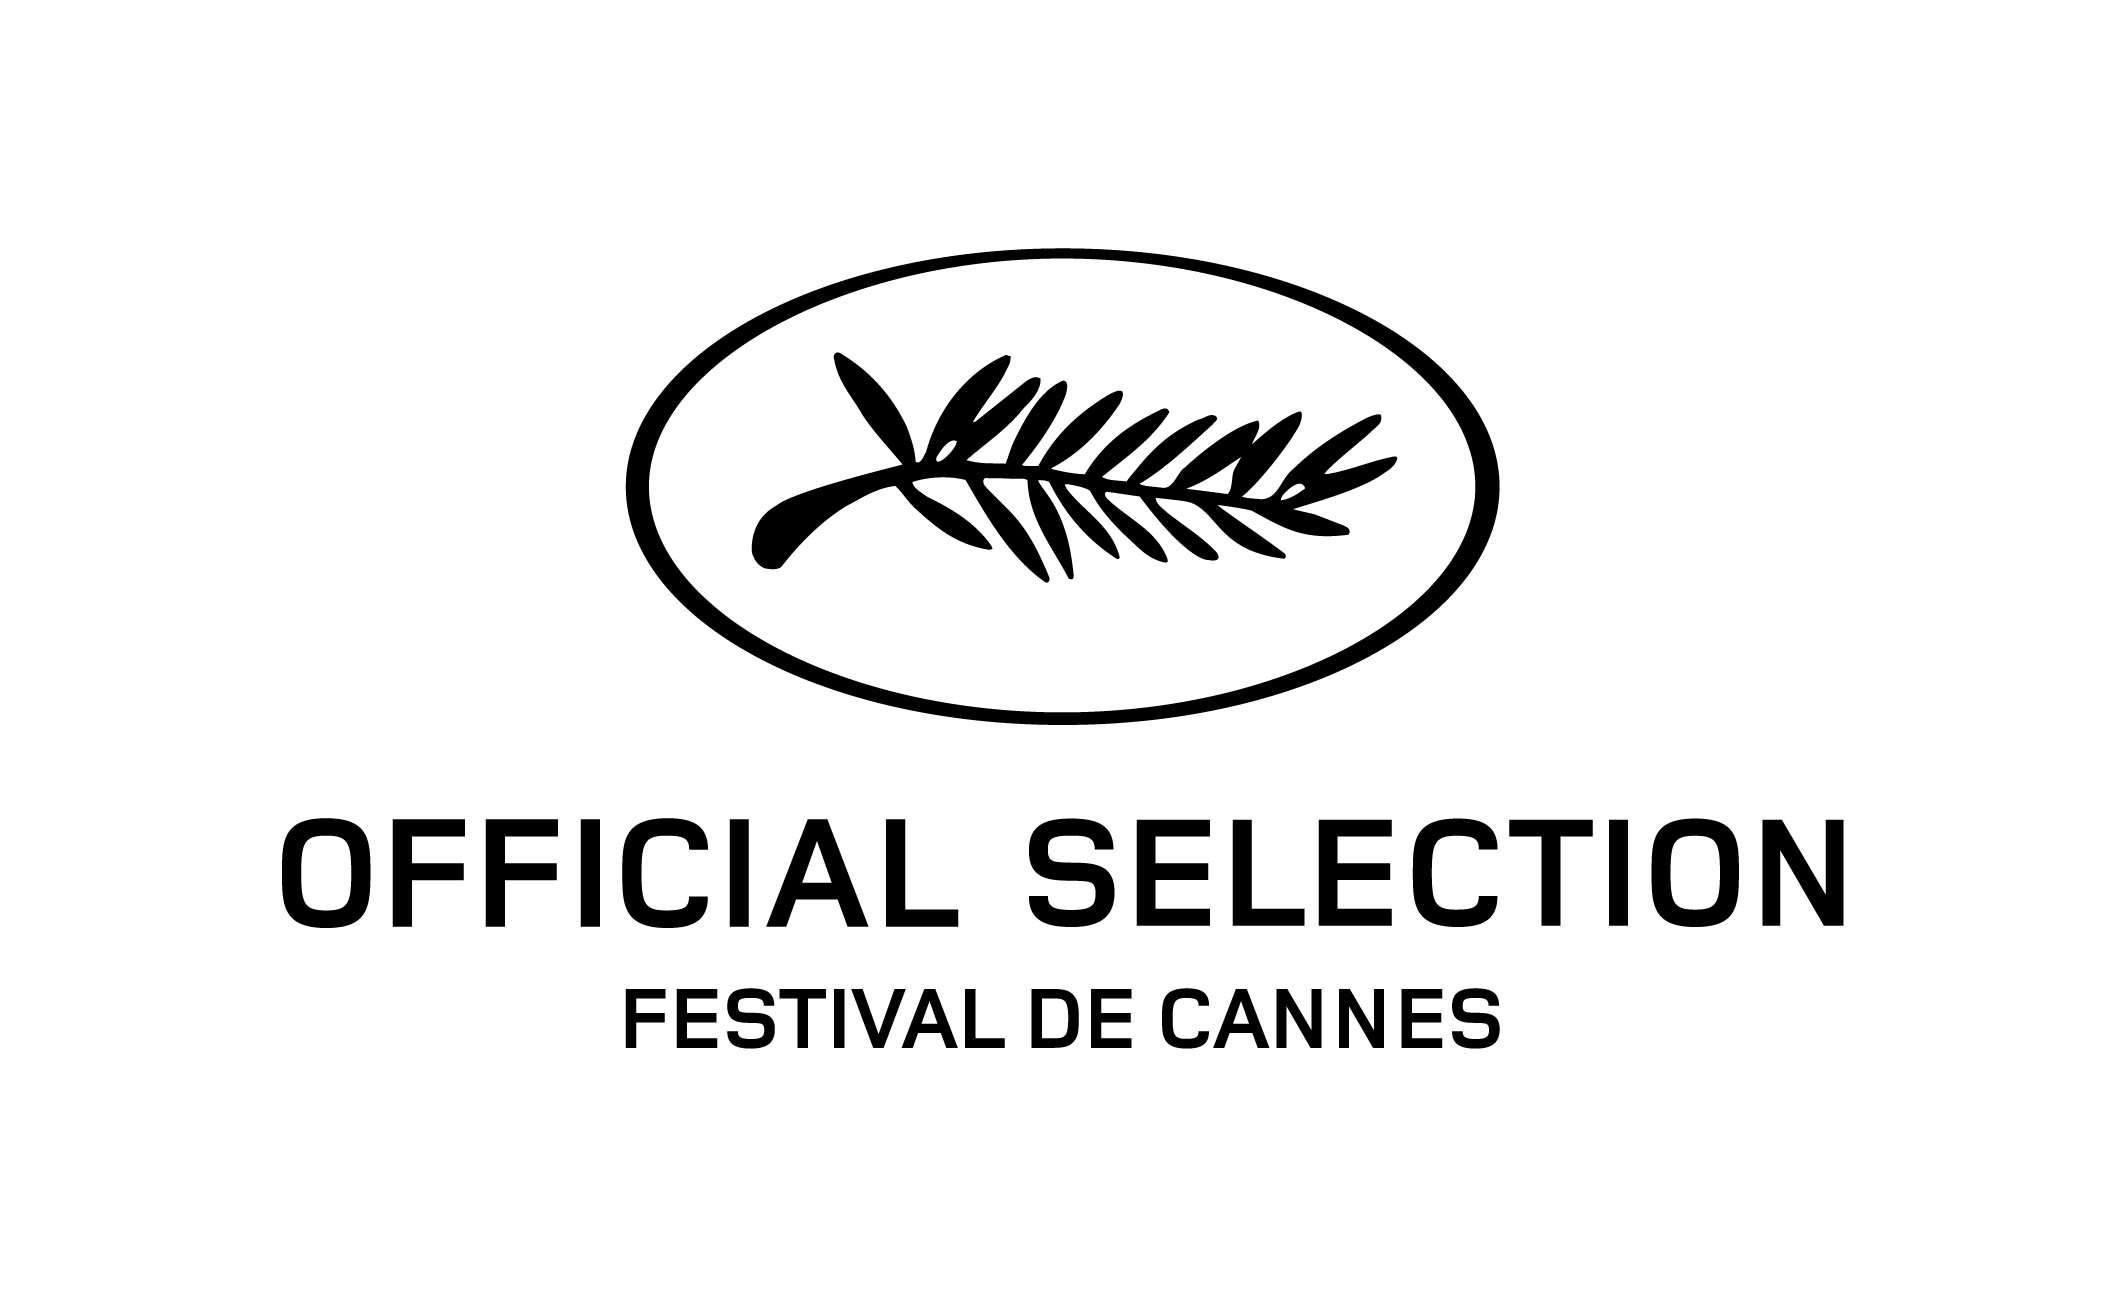 Cannes Film Festival Png - SEA SORROW in OFFICIAL SELECTION at CANNES FILM FESTIVAL 2017 ...